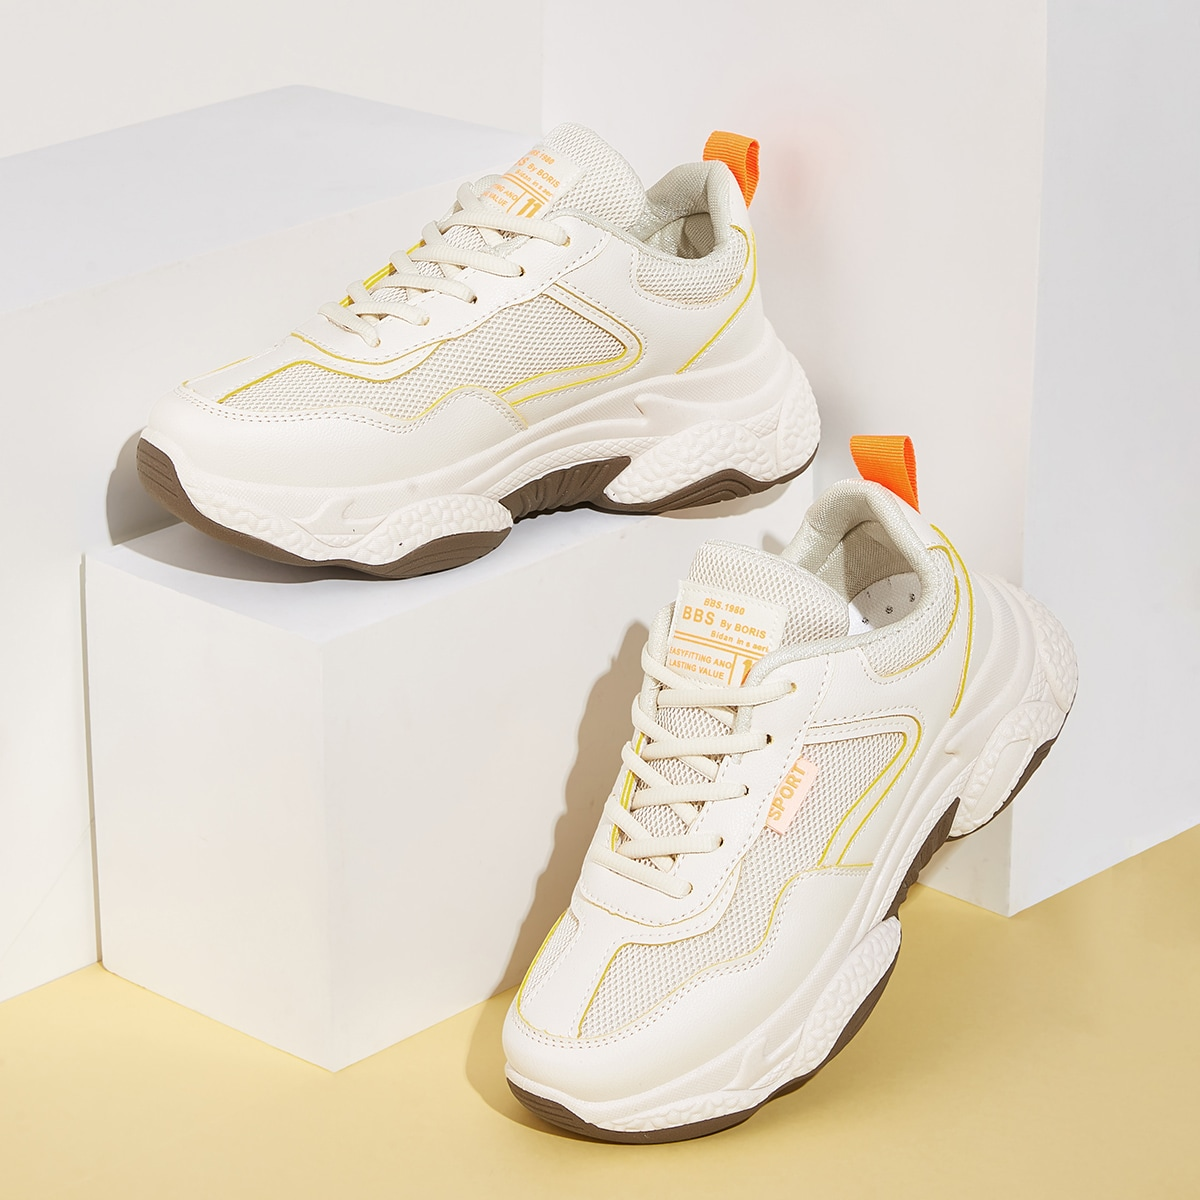 Lace-up Front Mesh Trainers in Apricot by ROMWE on GOOFASH